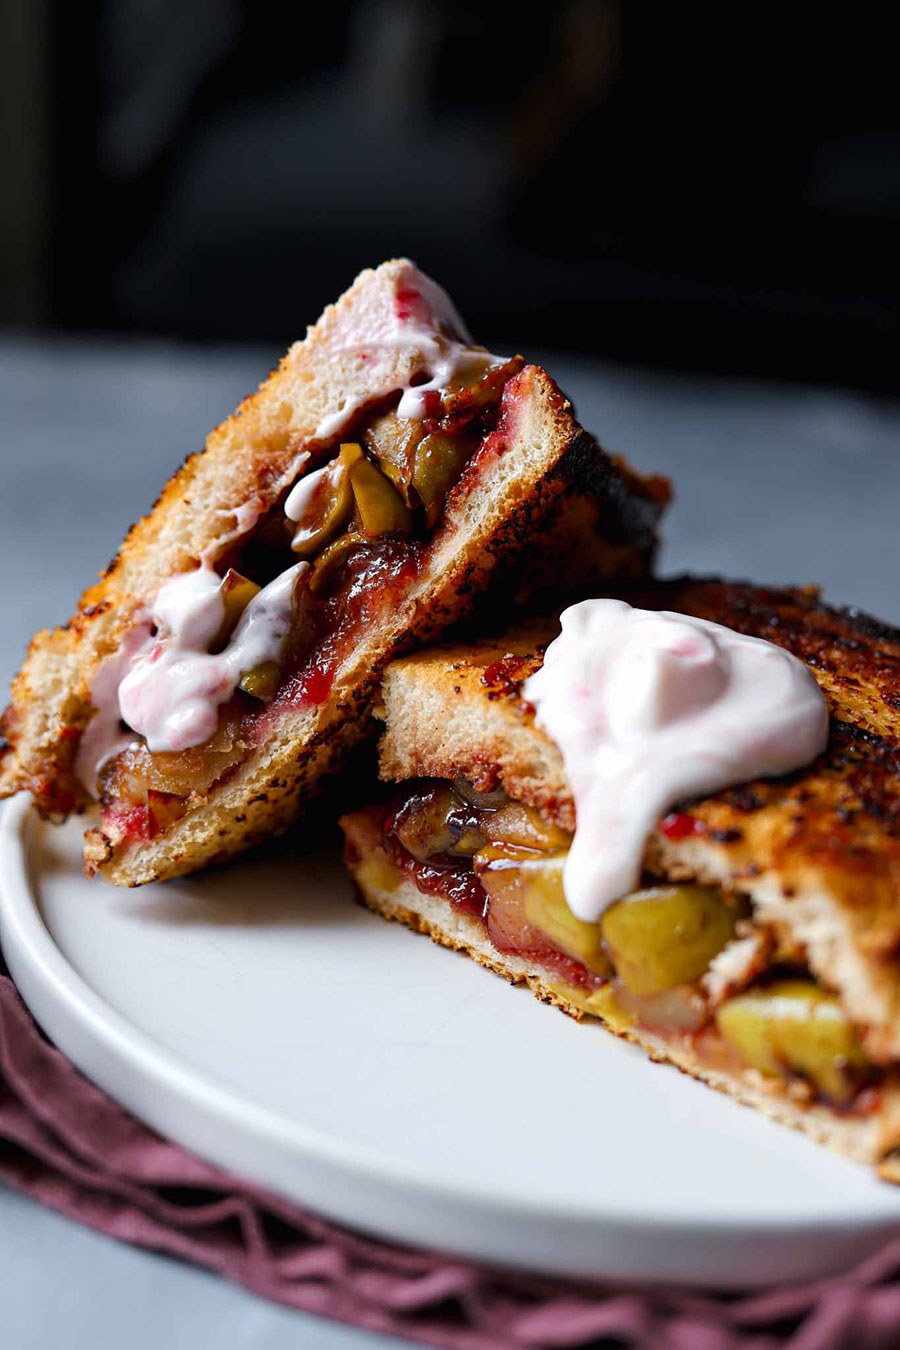 Cinnamon and Apple French Toastie